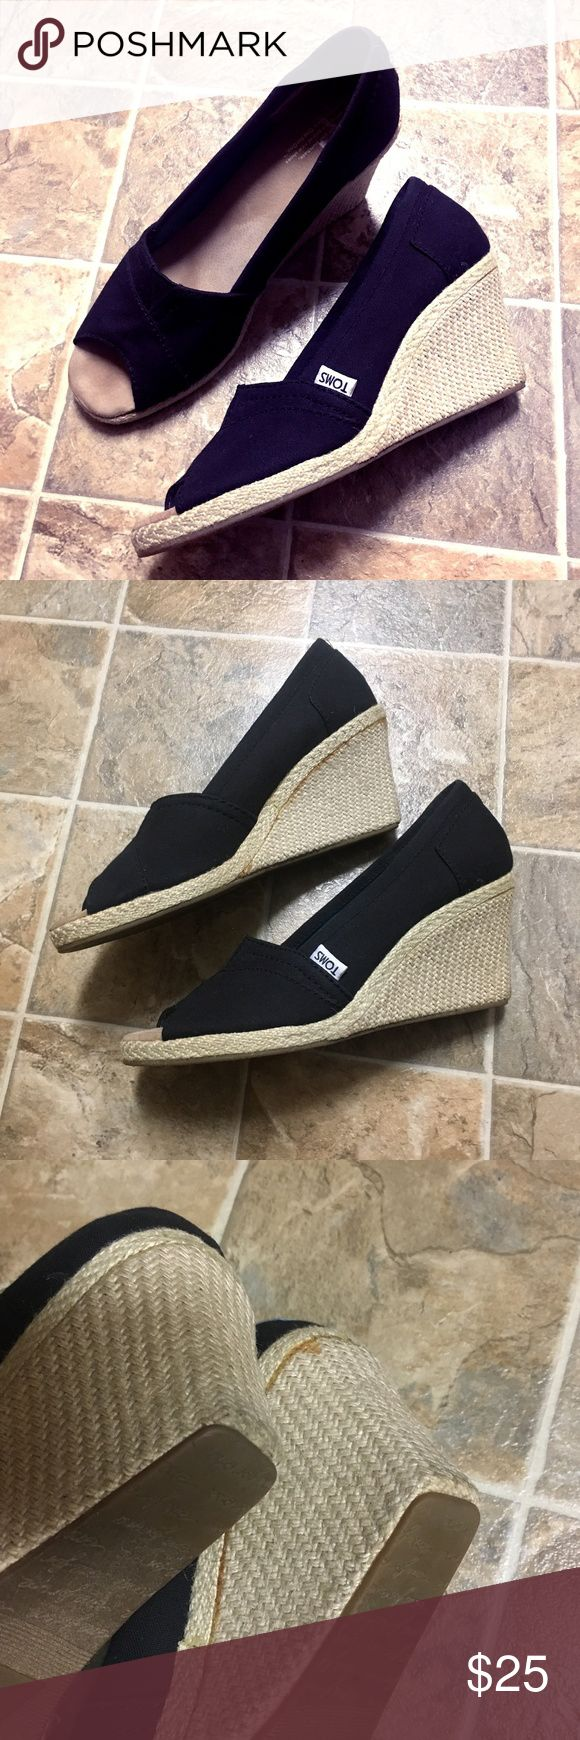 TOMS Black Wedges Espadrilles - Size 9.5 Women's TOMS wedges/espadrilles in a size 9.5. Black cloth upper with light beige woven wedge/sole. In great condition, only worn a handful of times. I did notice that for some reason, it looks like the adhesive is showing through on the right shoe - so where the sole meets the upper part, there's an orange line. This is only on the one shoe. Other than this, there are no flaws or signs of wear - you can see by the bottom of the soles that they have…